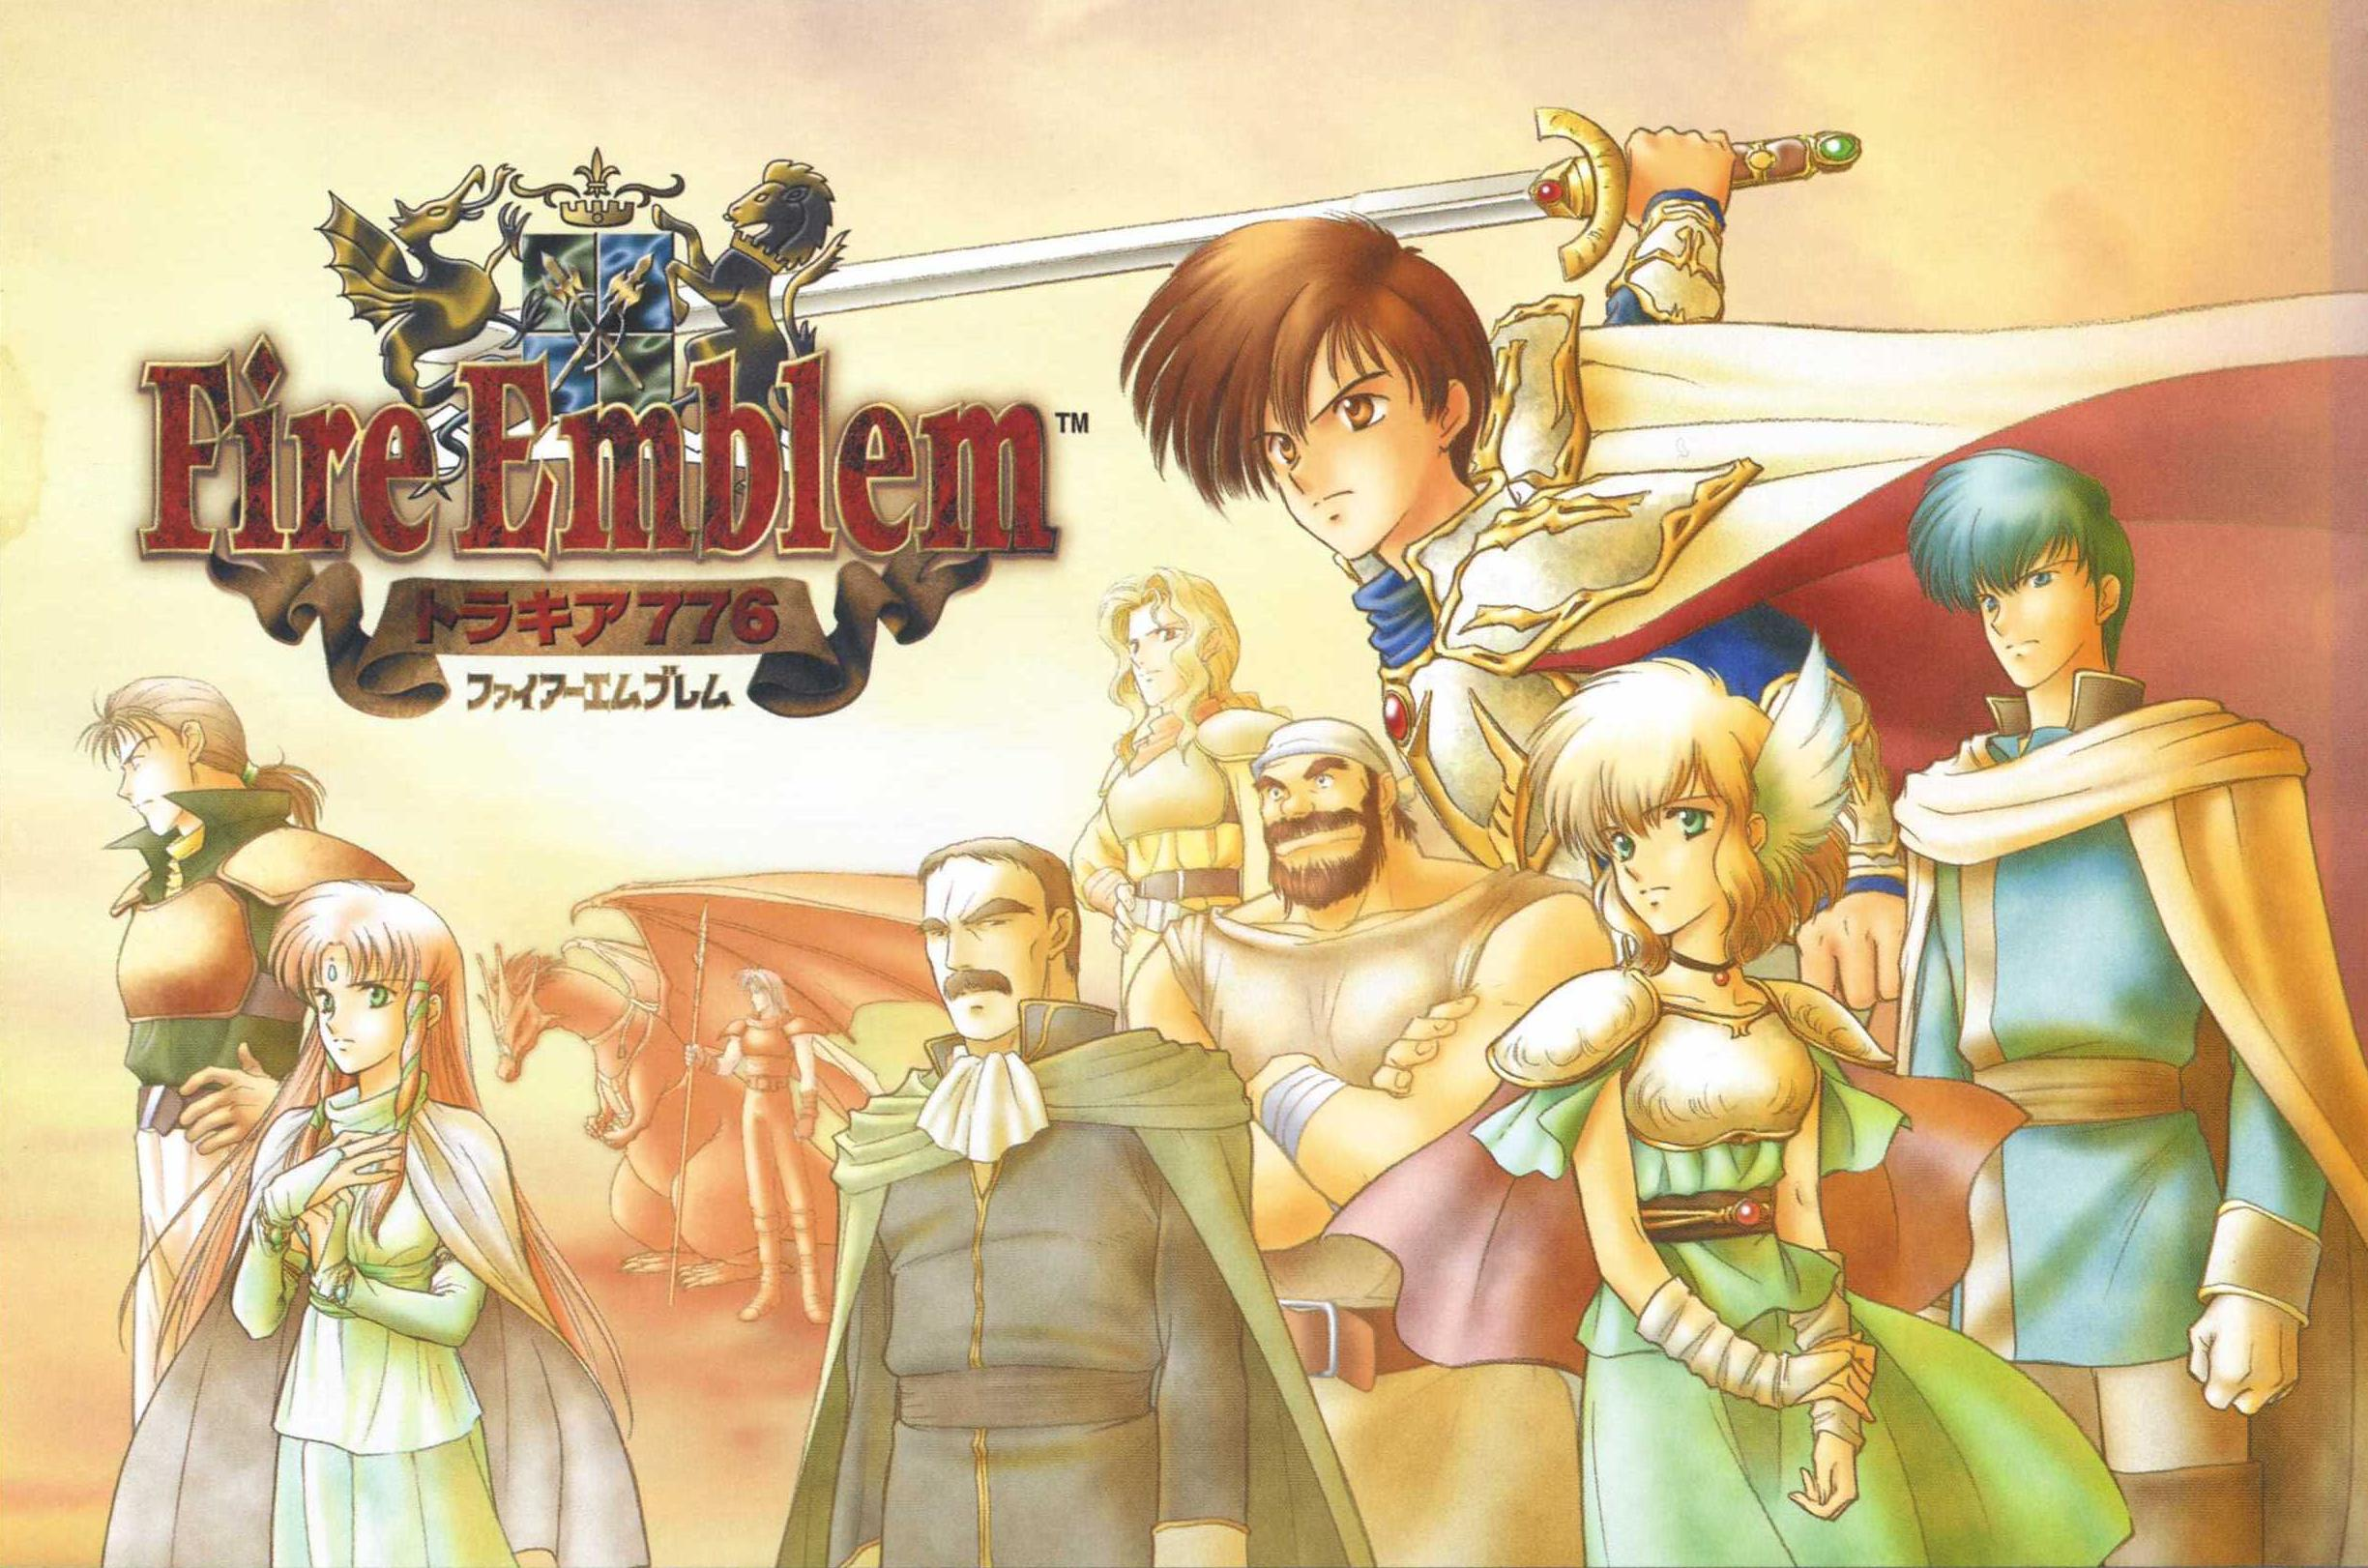 http://lparchive.org/Fire-Emblem-Thracia-776/Update%2063/22-Thracia776.jpg